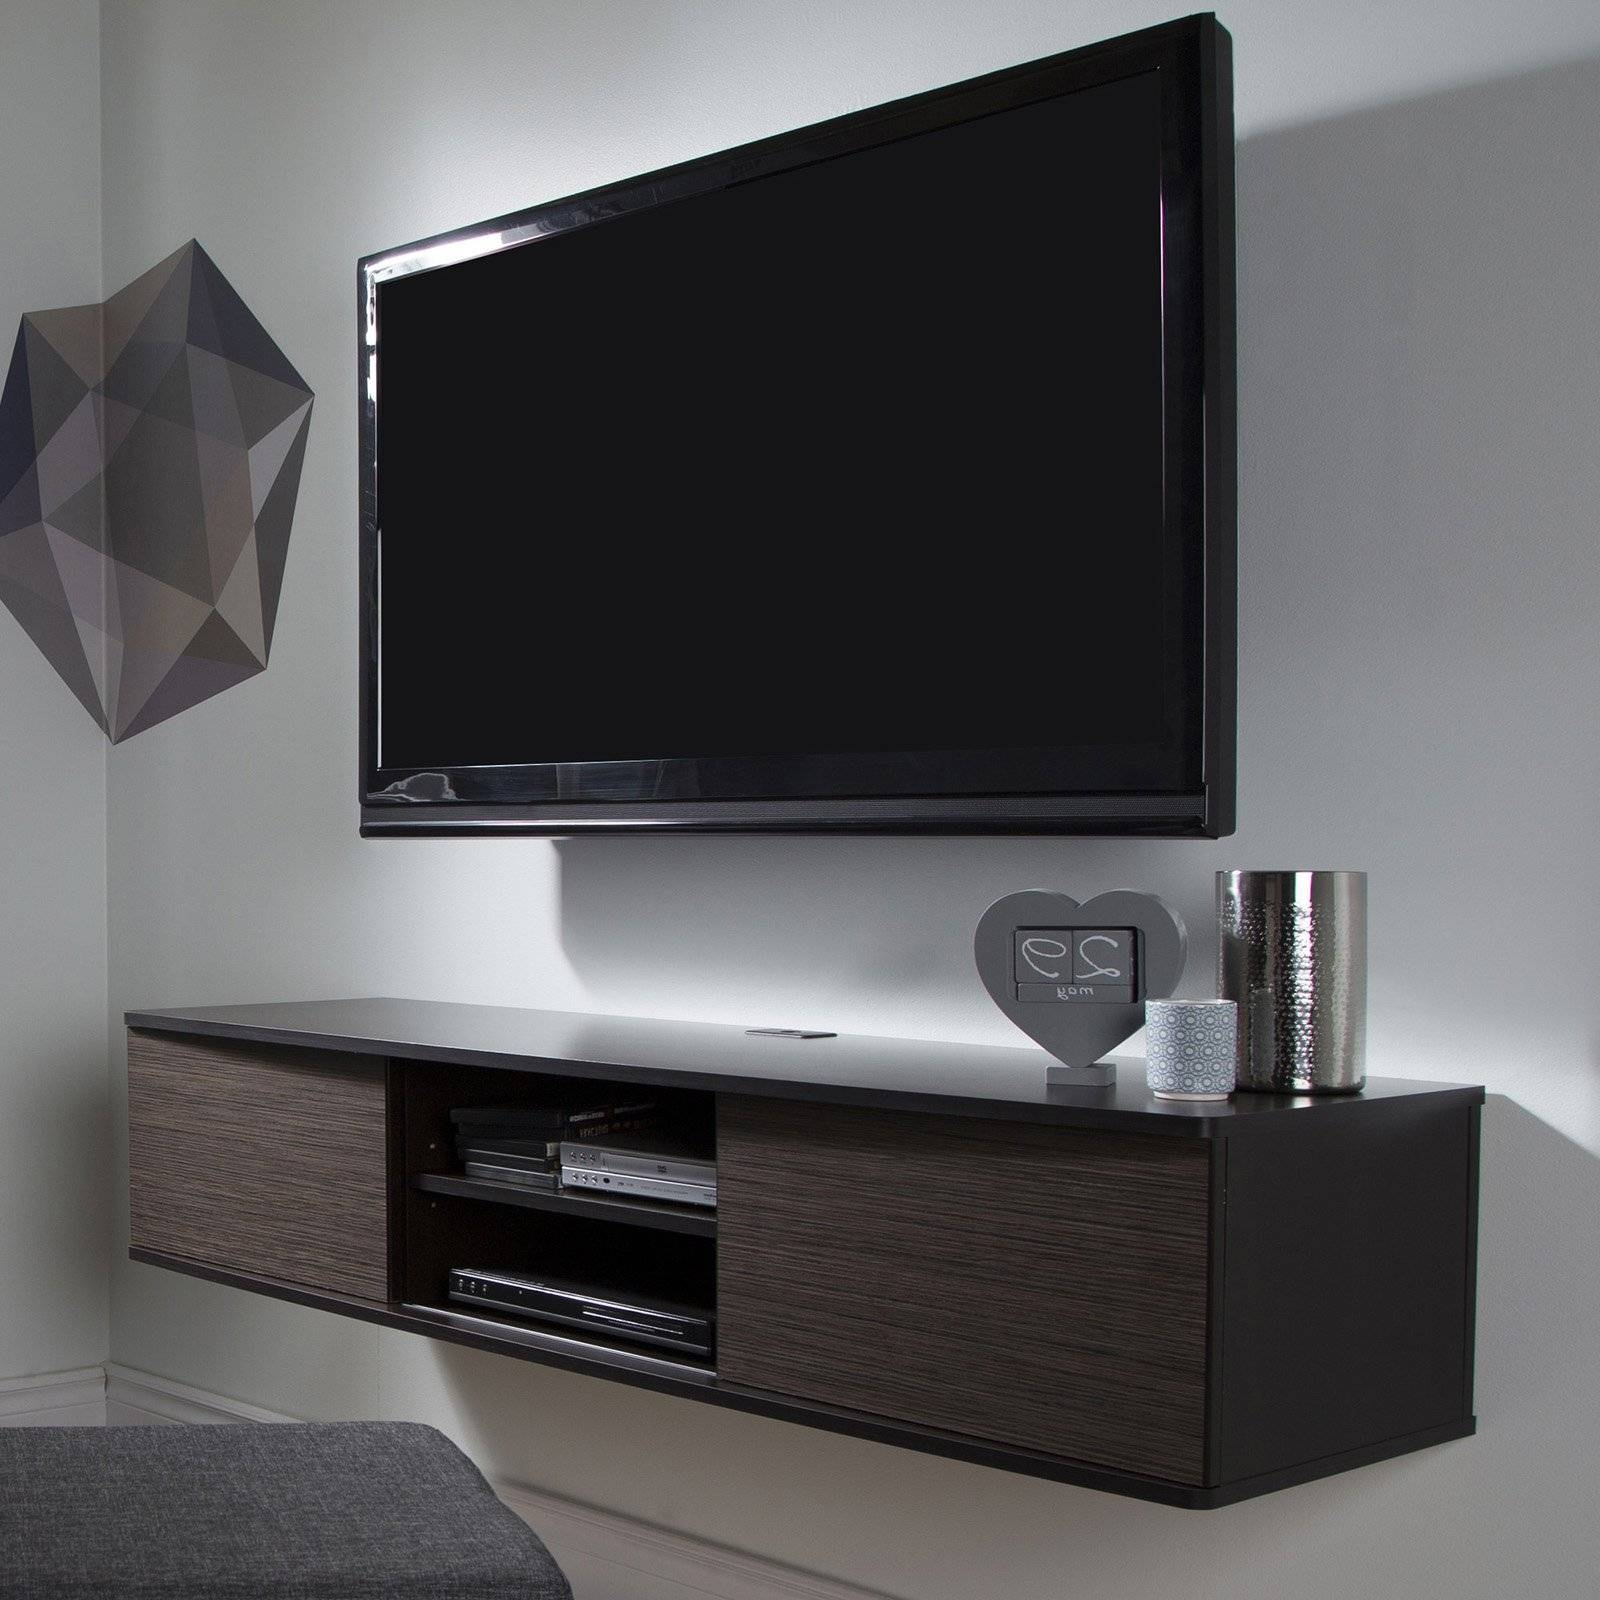 Contemporary & Modern Tv Stands | Hayneedle pertaining to Contemporary Modern Tv Stands (Image 7 of 15)